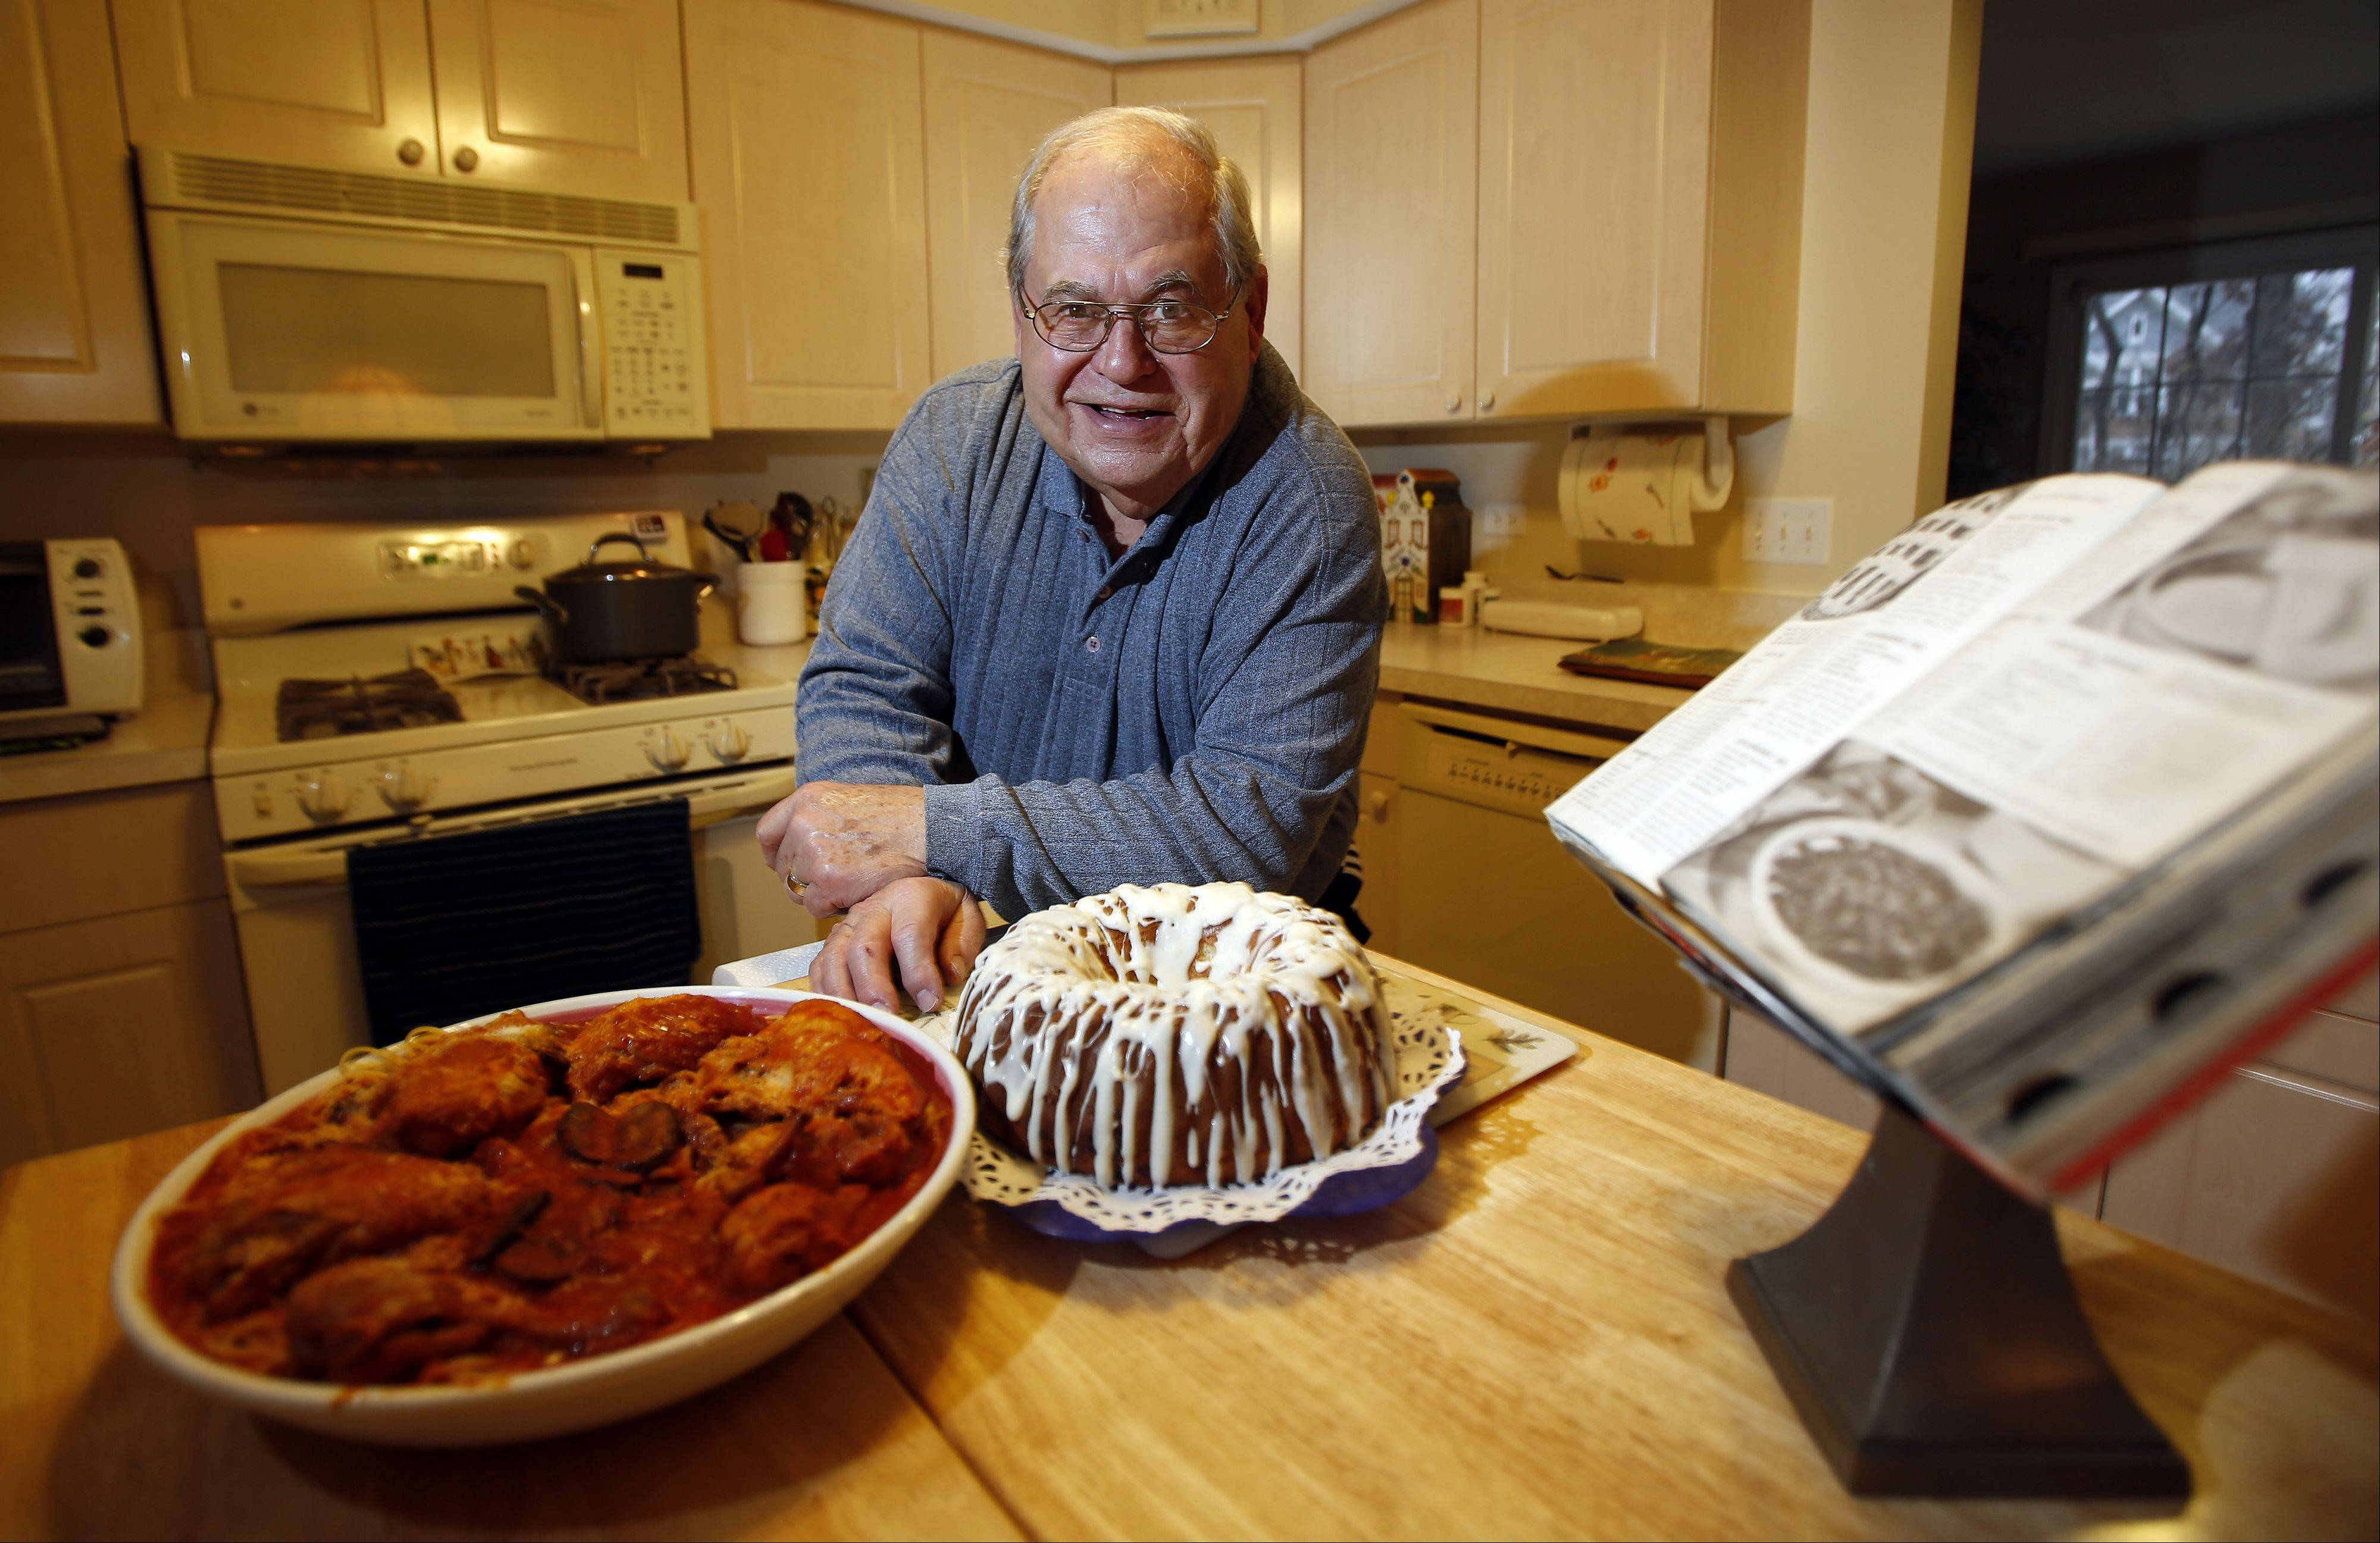 Cook of the Week Louis Margiotta of Streamwood shows off his raspberry pound cake and his pasta with chicken gravy.